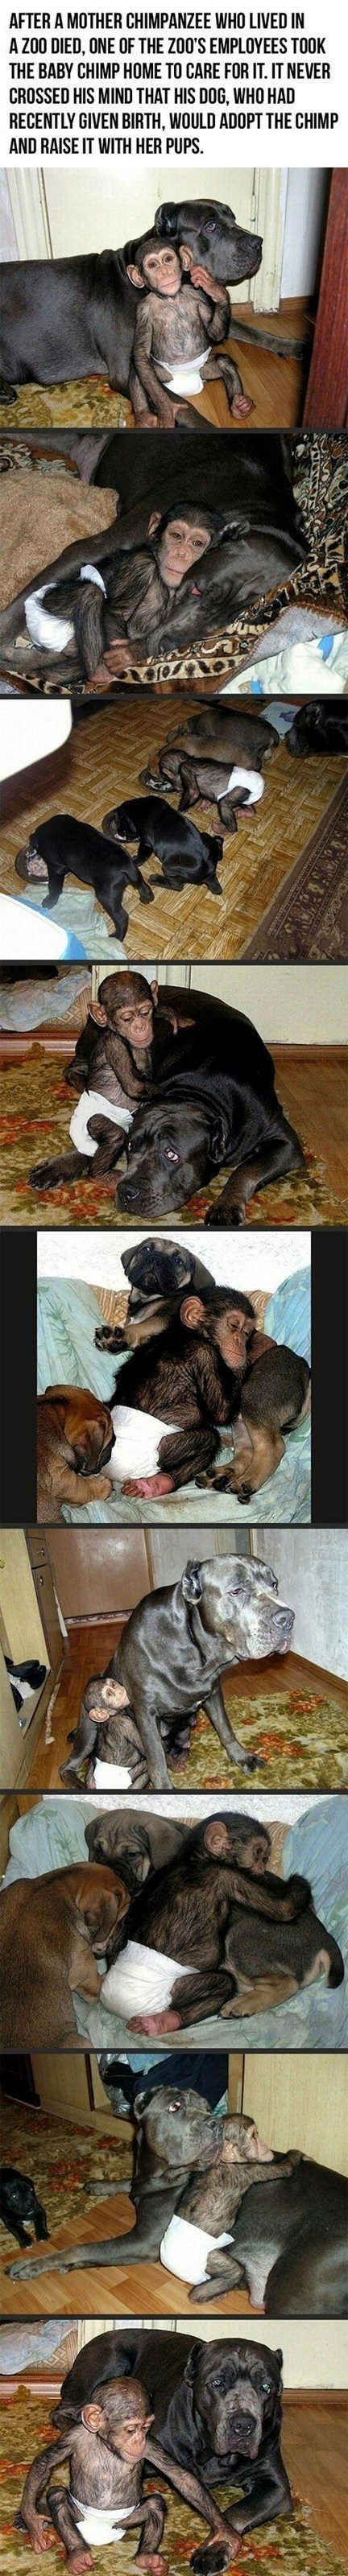 dogs chimpanzee adoption mother zoo chimp mom - 6952236032